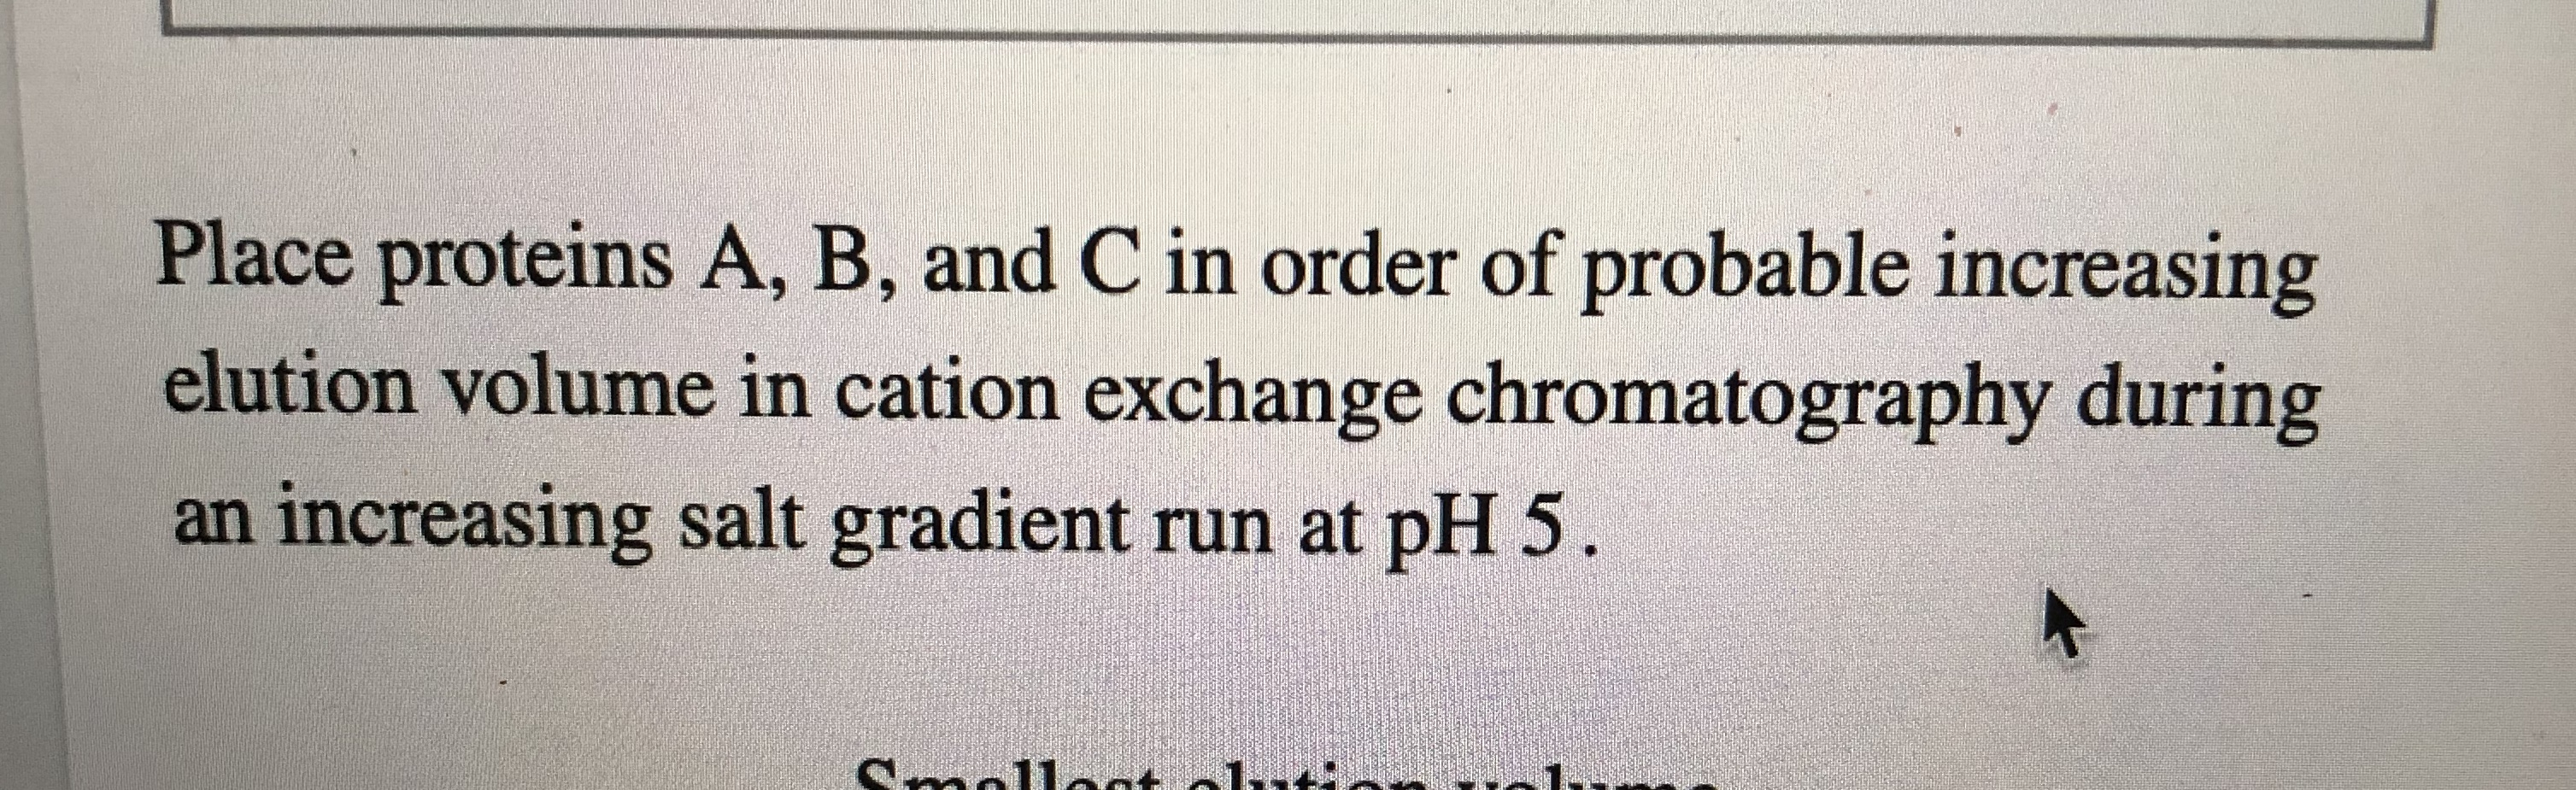 Place proteins A, B, and C in order of probable increasing elution volume in cation exchange chromatography during an increasing salt gradient run at pH 5.